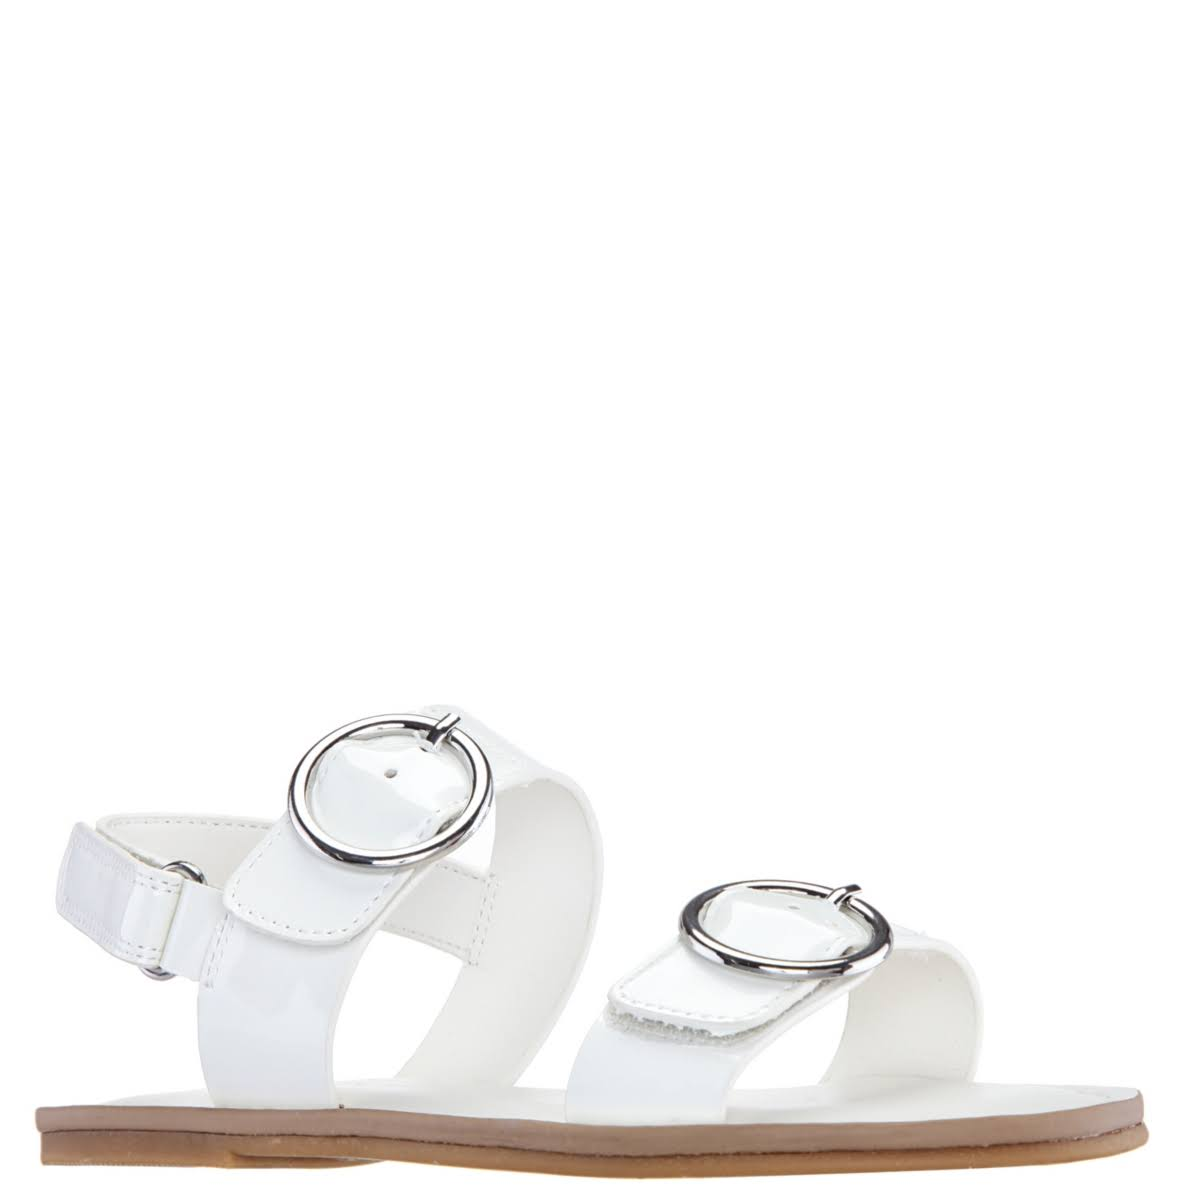 Girls Nina Brunny Flat Sandals White